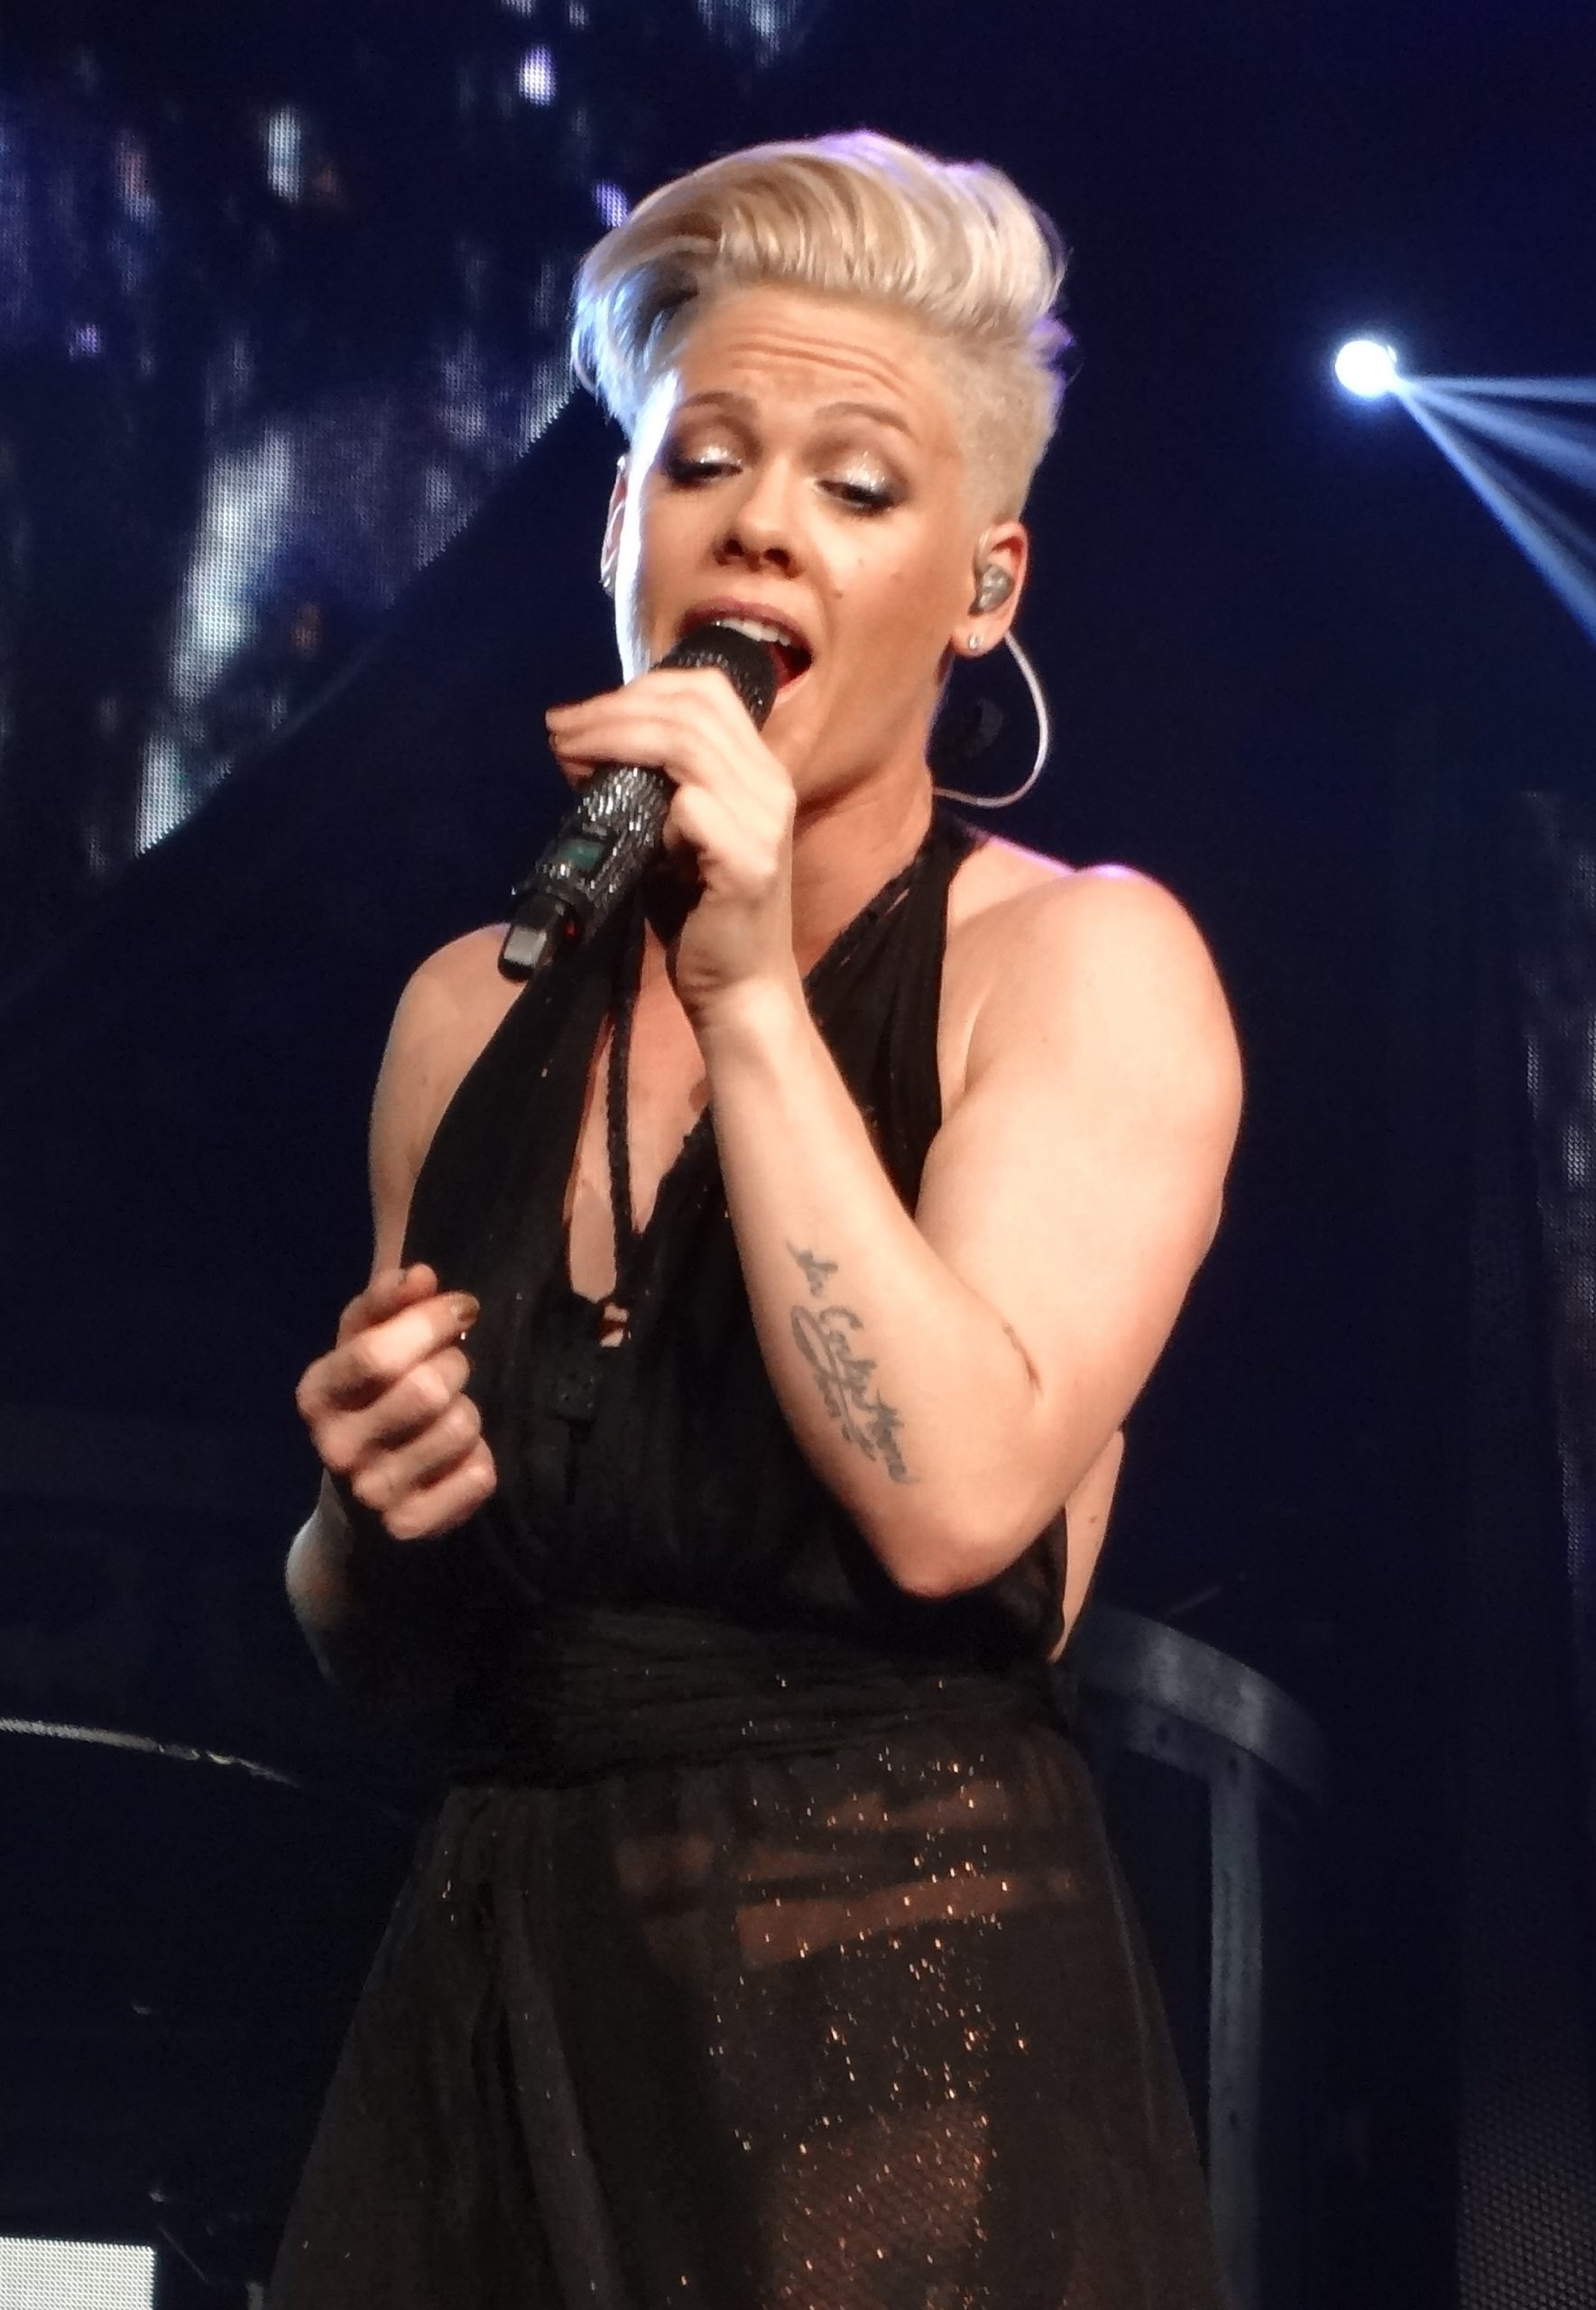 P!nk Is People's Cover Girl For The Beautiful Issue And We Are LOVING IT!